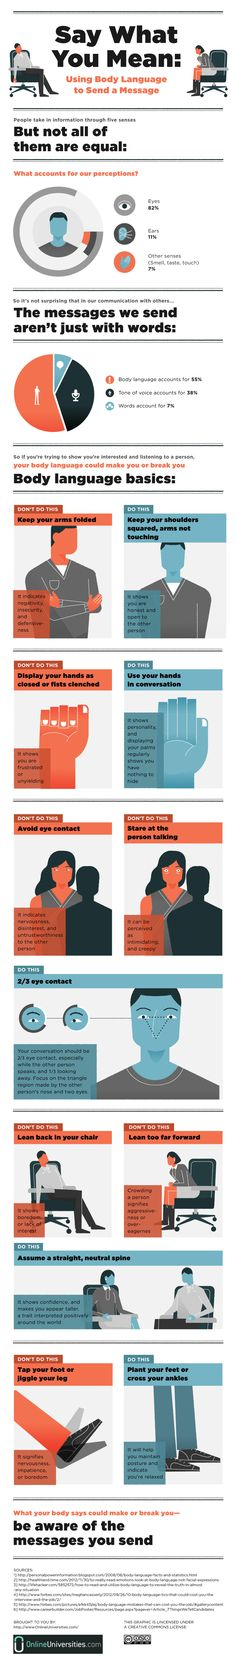 7 Surprising Things Your Body Language Says About You -PositiveMed   Where Positive Thinking Impacts Life